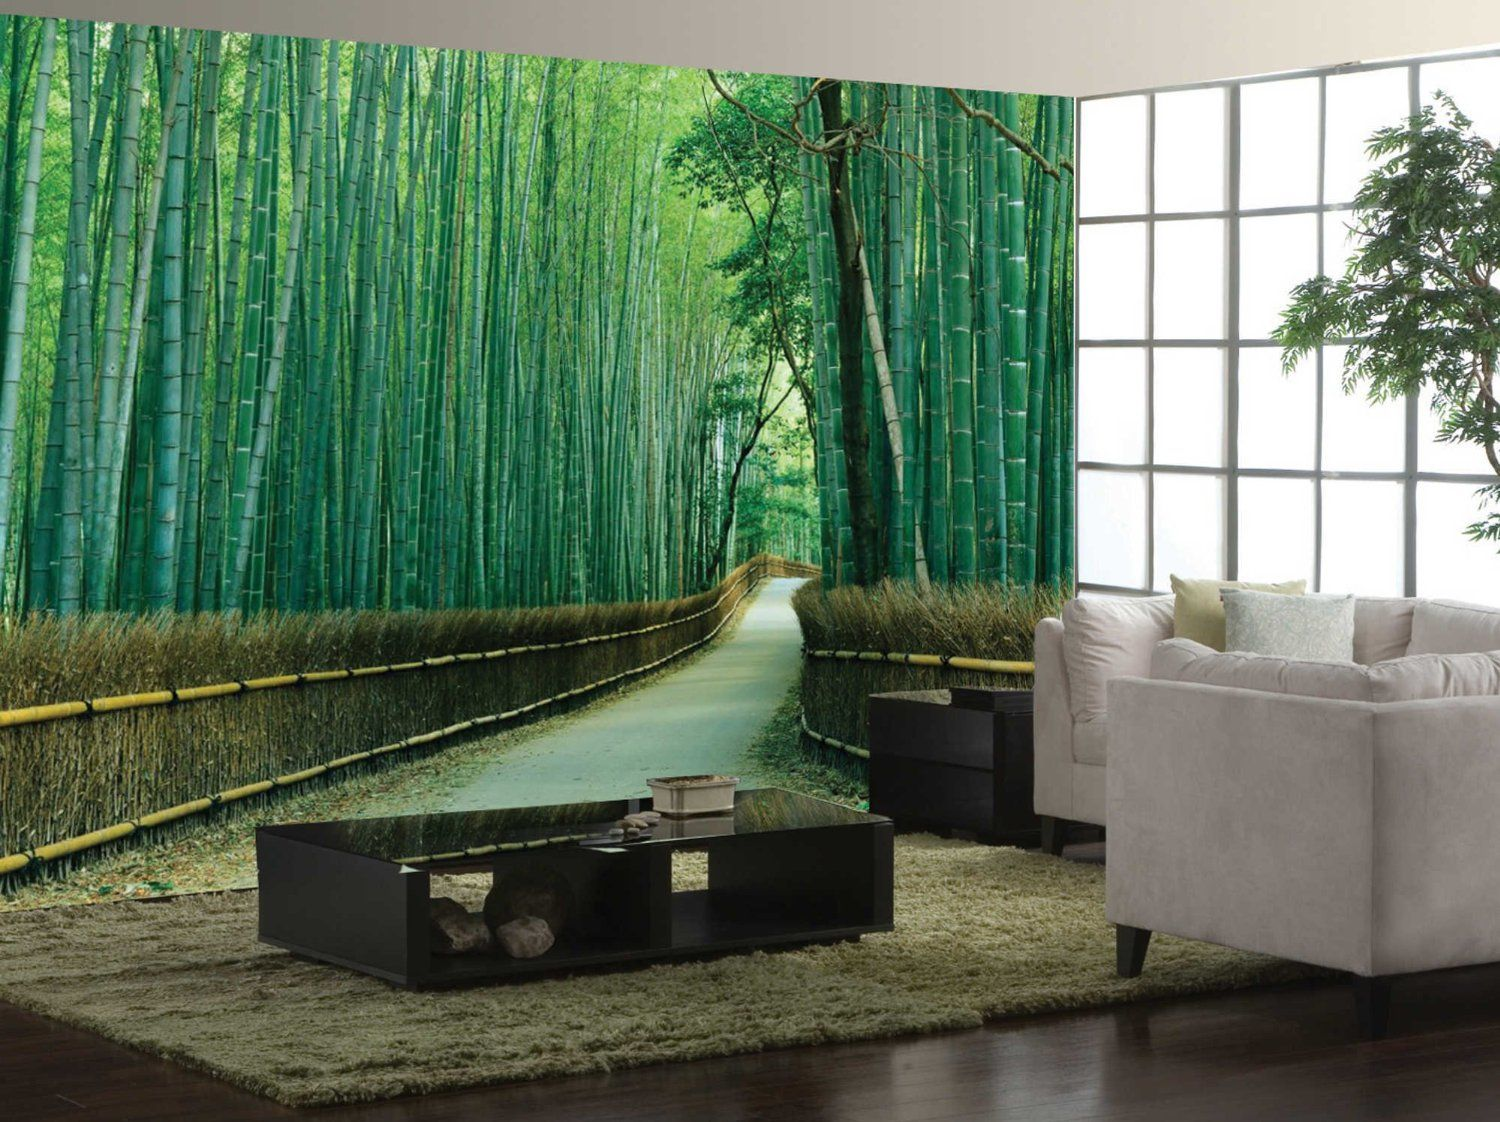 Wall Mural Ideas For Living Room Wallpaper Buying Tips You Must Know Bamboo Forest Wall Mural Ideas